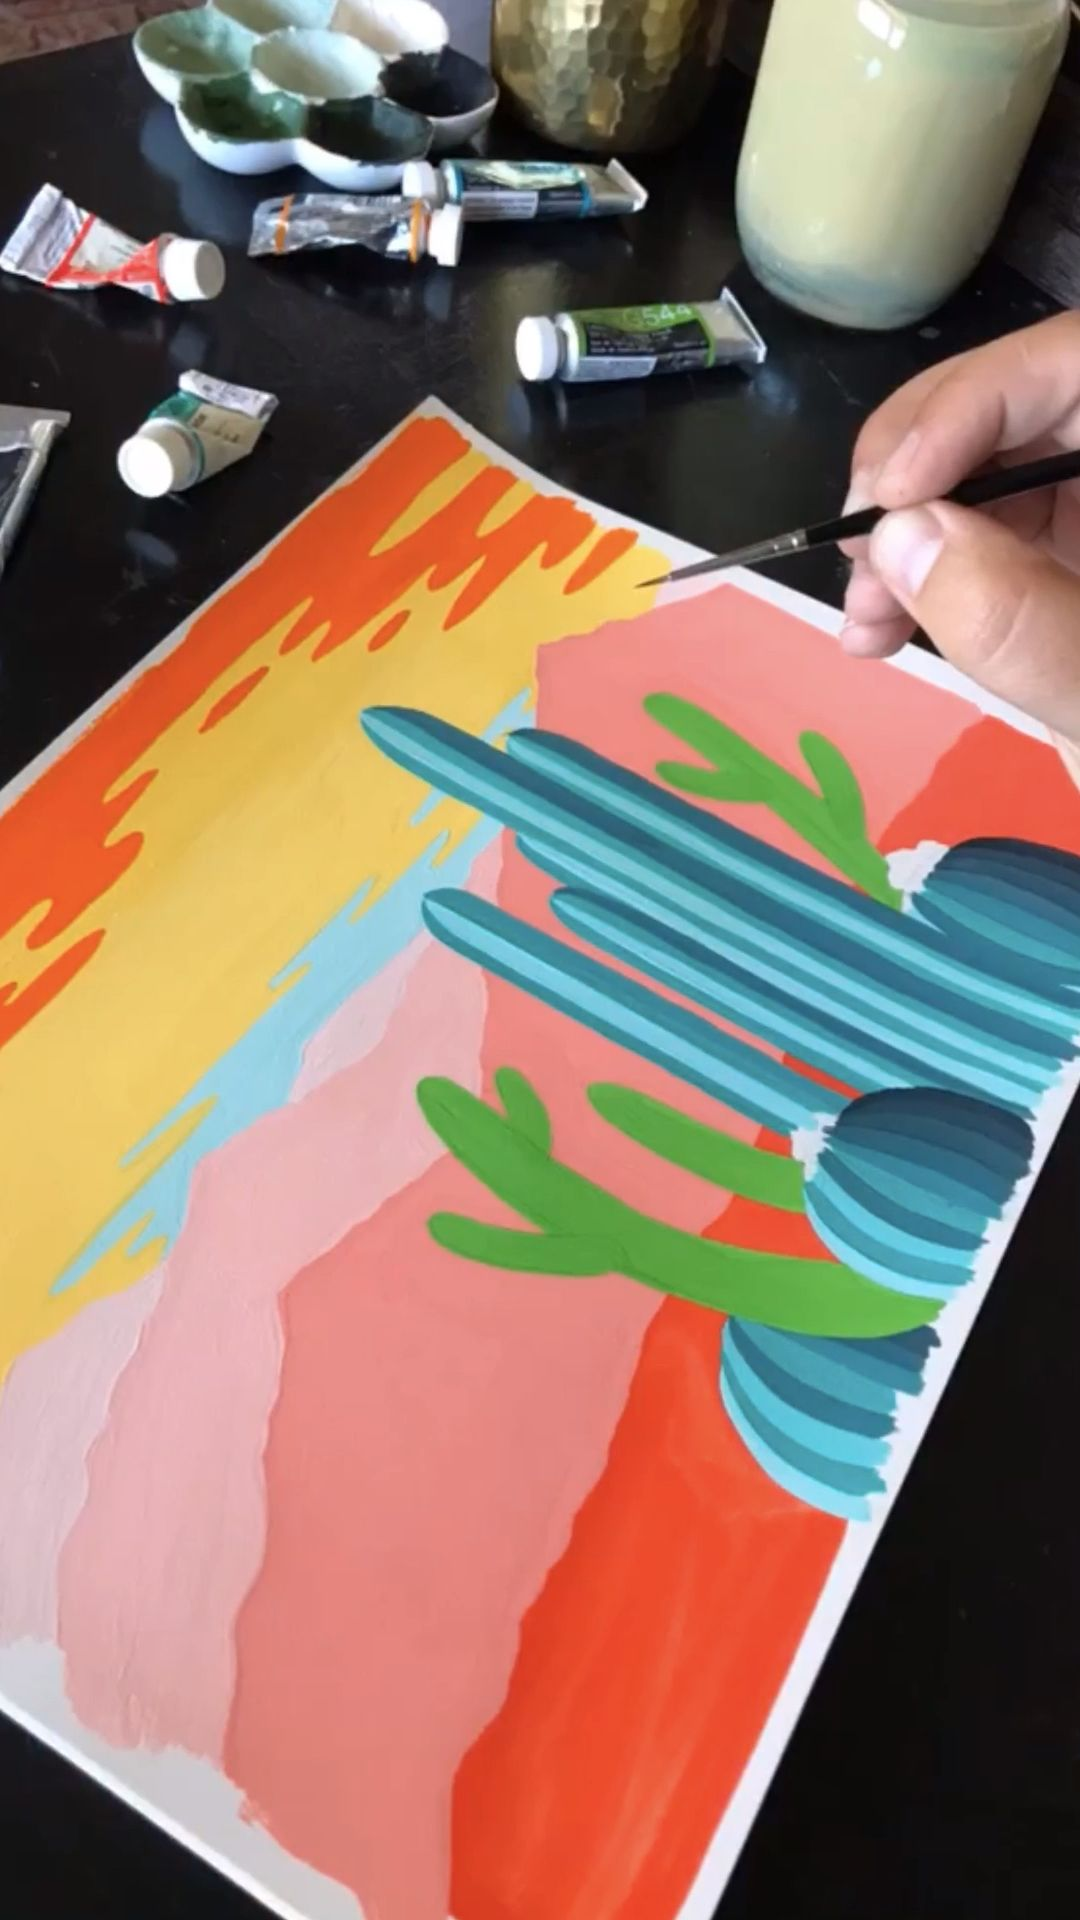 This is a short clip of a work in progress. I like to lay down the background colors and base before moving onto the highlights, shadows, and details. See more art by Philip Boelter and prints for sale on BoelterDesignCo.com